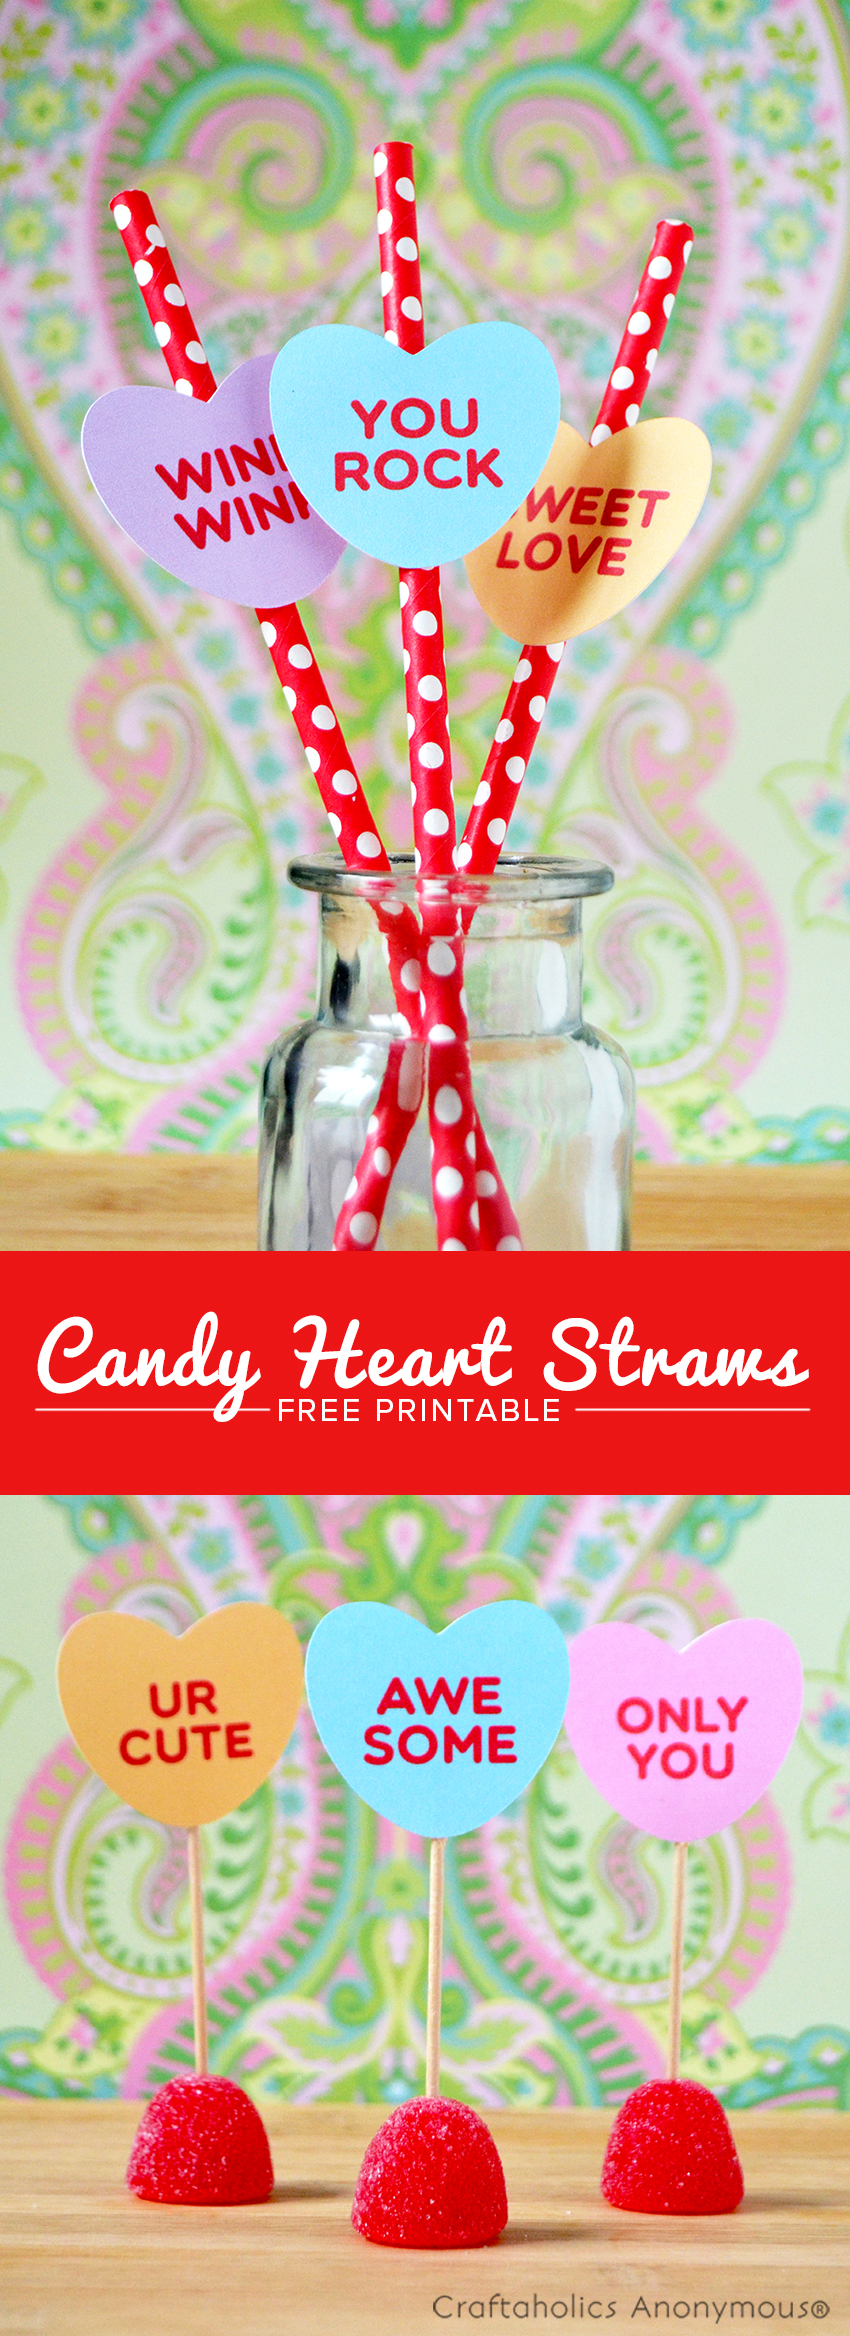 Craftaholics Anonymous Free Candy Hearts Printable And